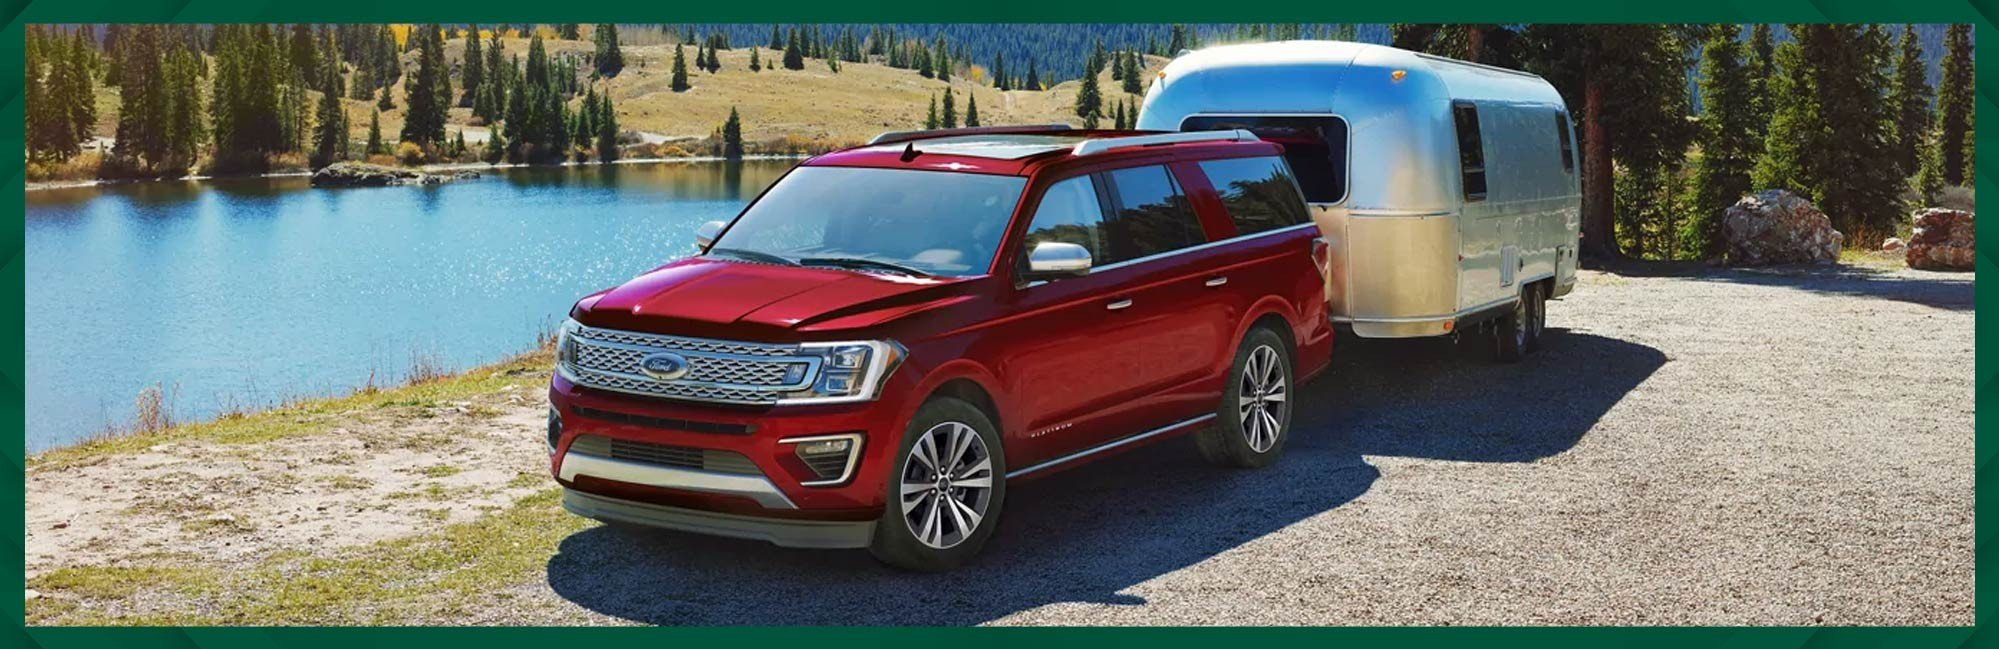 Ford Expedition towing specs